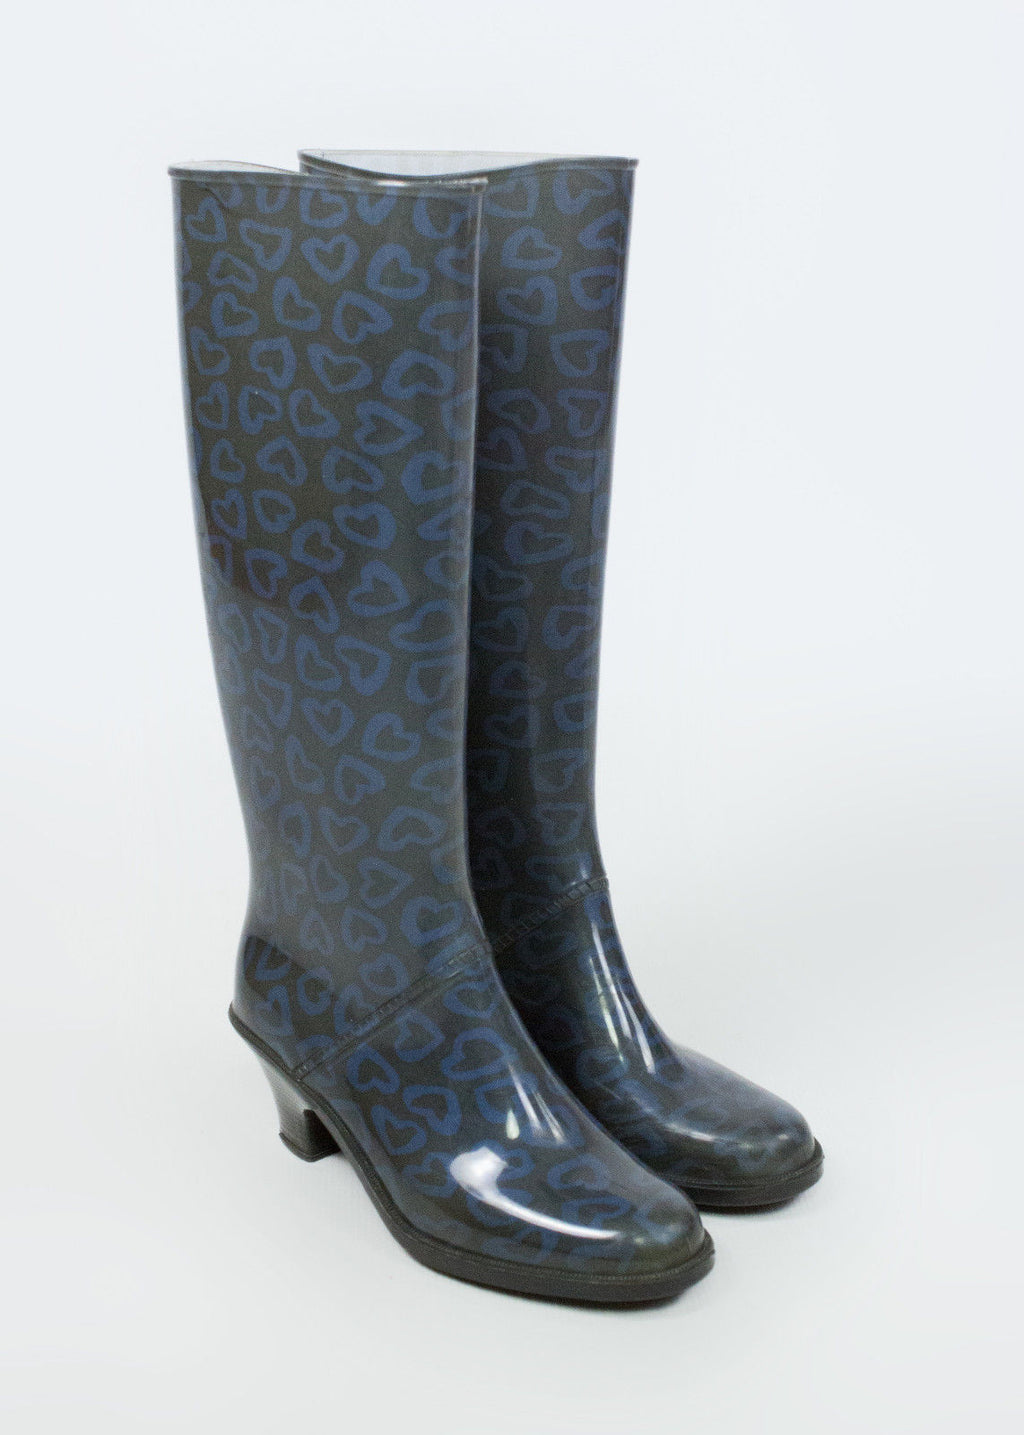 MARC by MARC JACOBS Rubber Rain Boots Wellies, EU 39; US 9; UK 6 - secondfirst